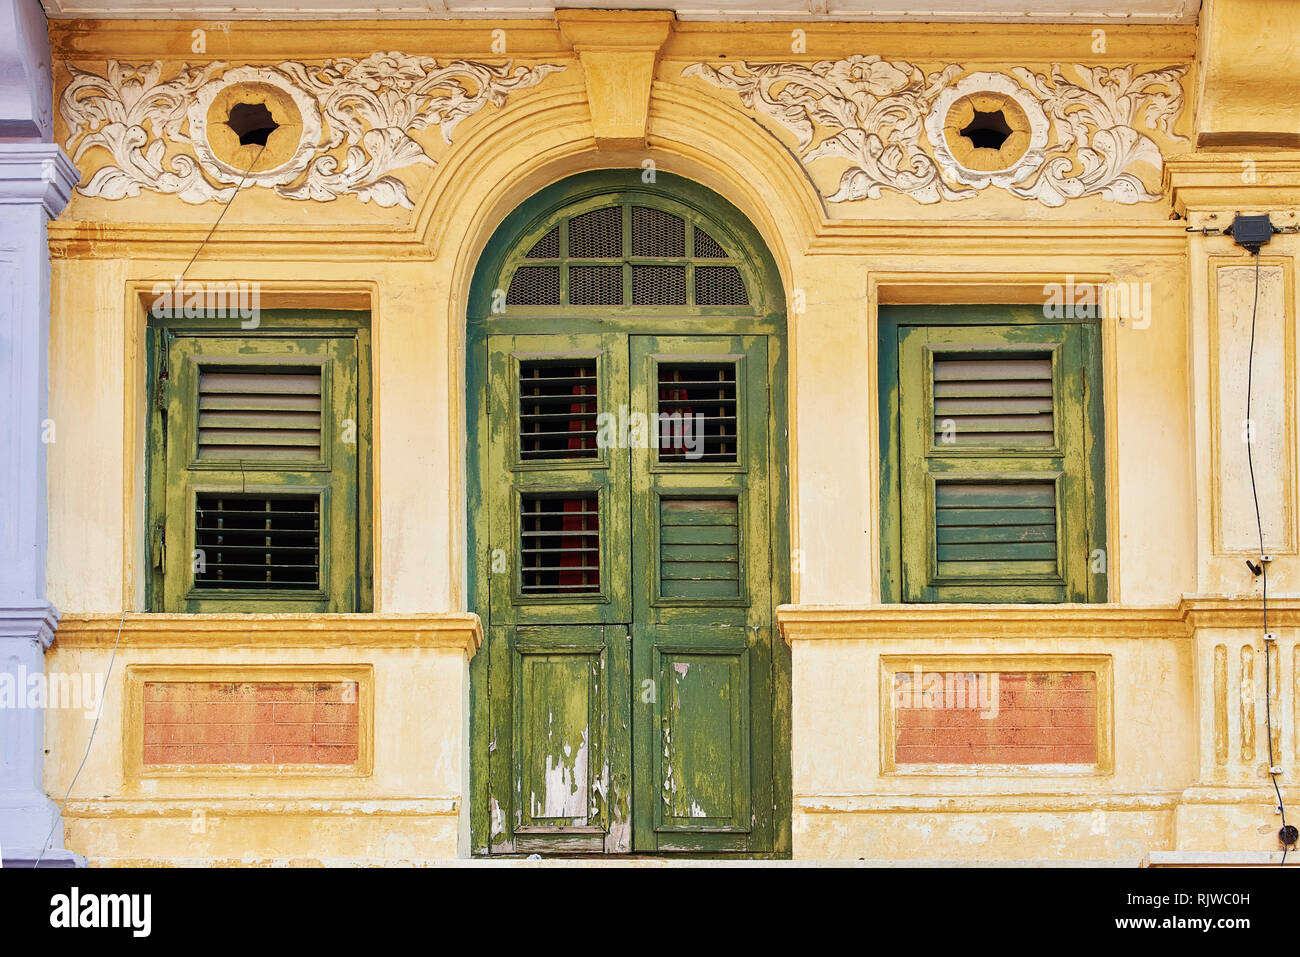 a old shophouse building on the street in George Town, Penang, Malaysia - Stock Image